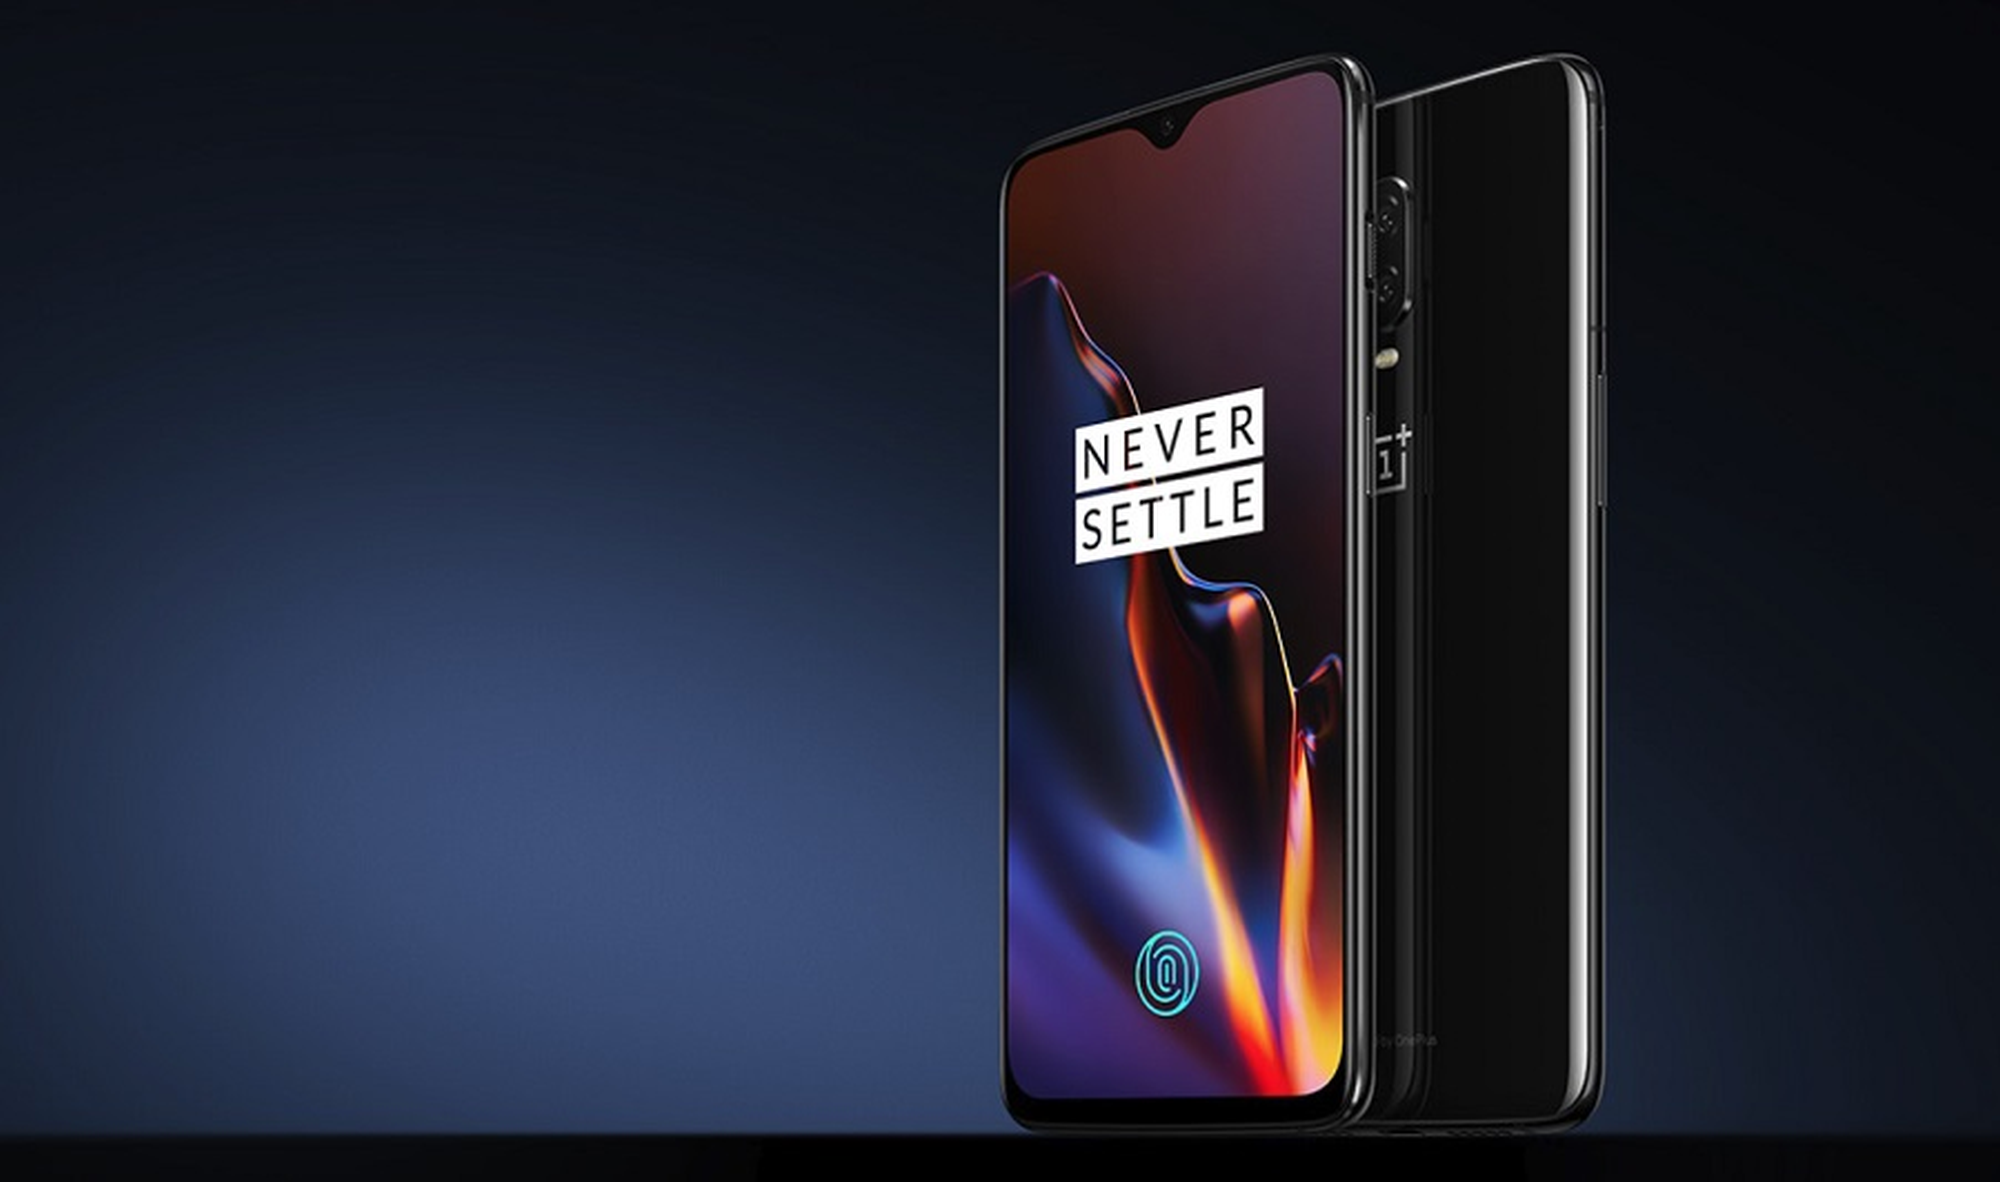 OnePlus-6T-WHy-not-buy-this-great-device-display